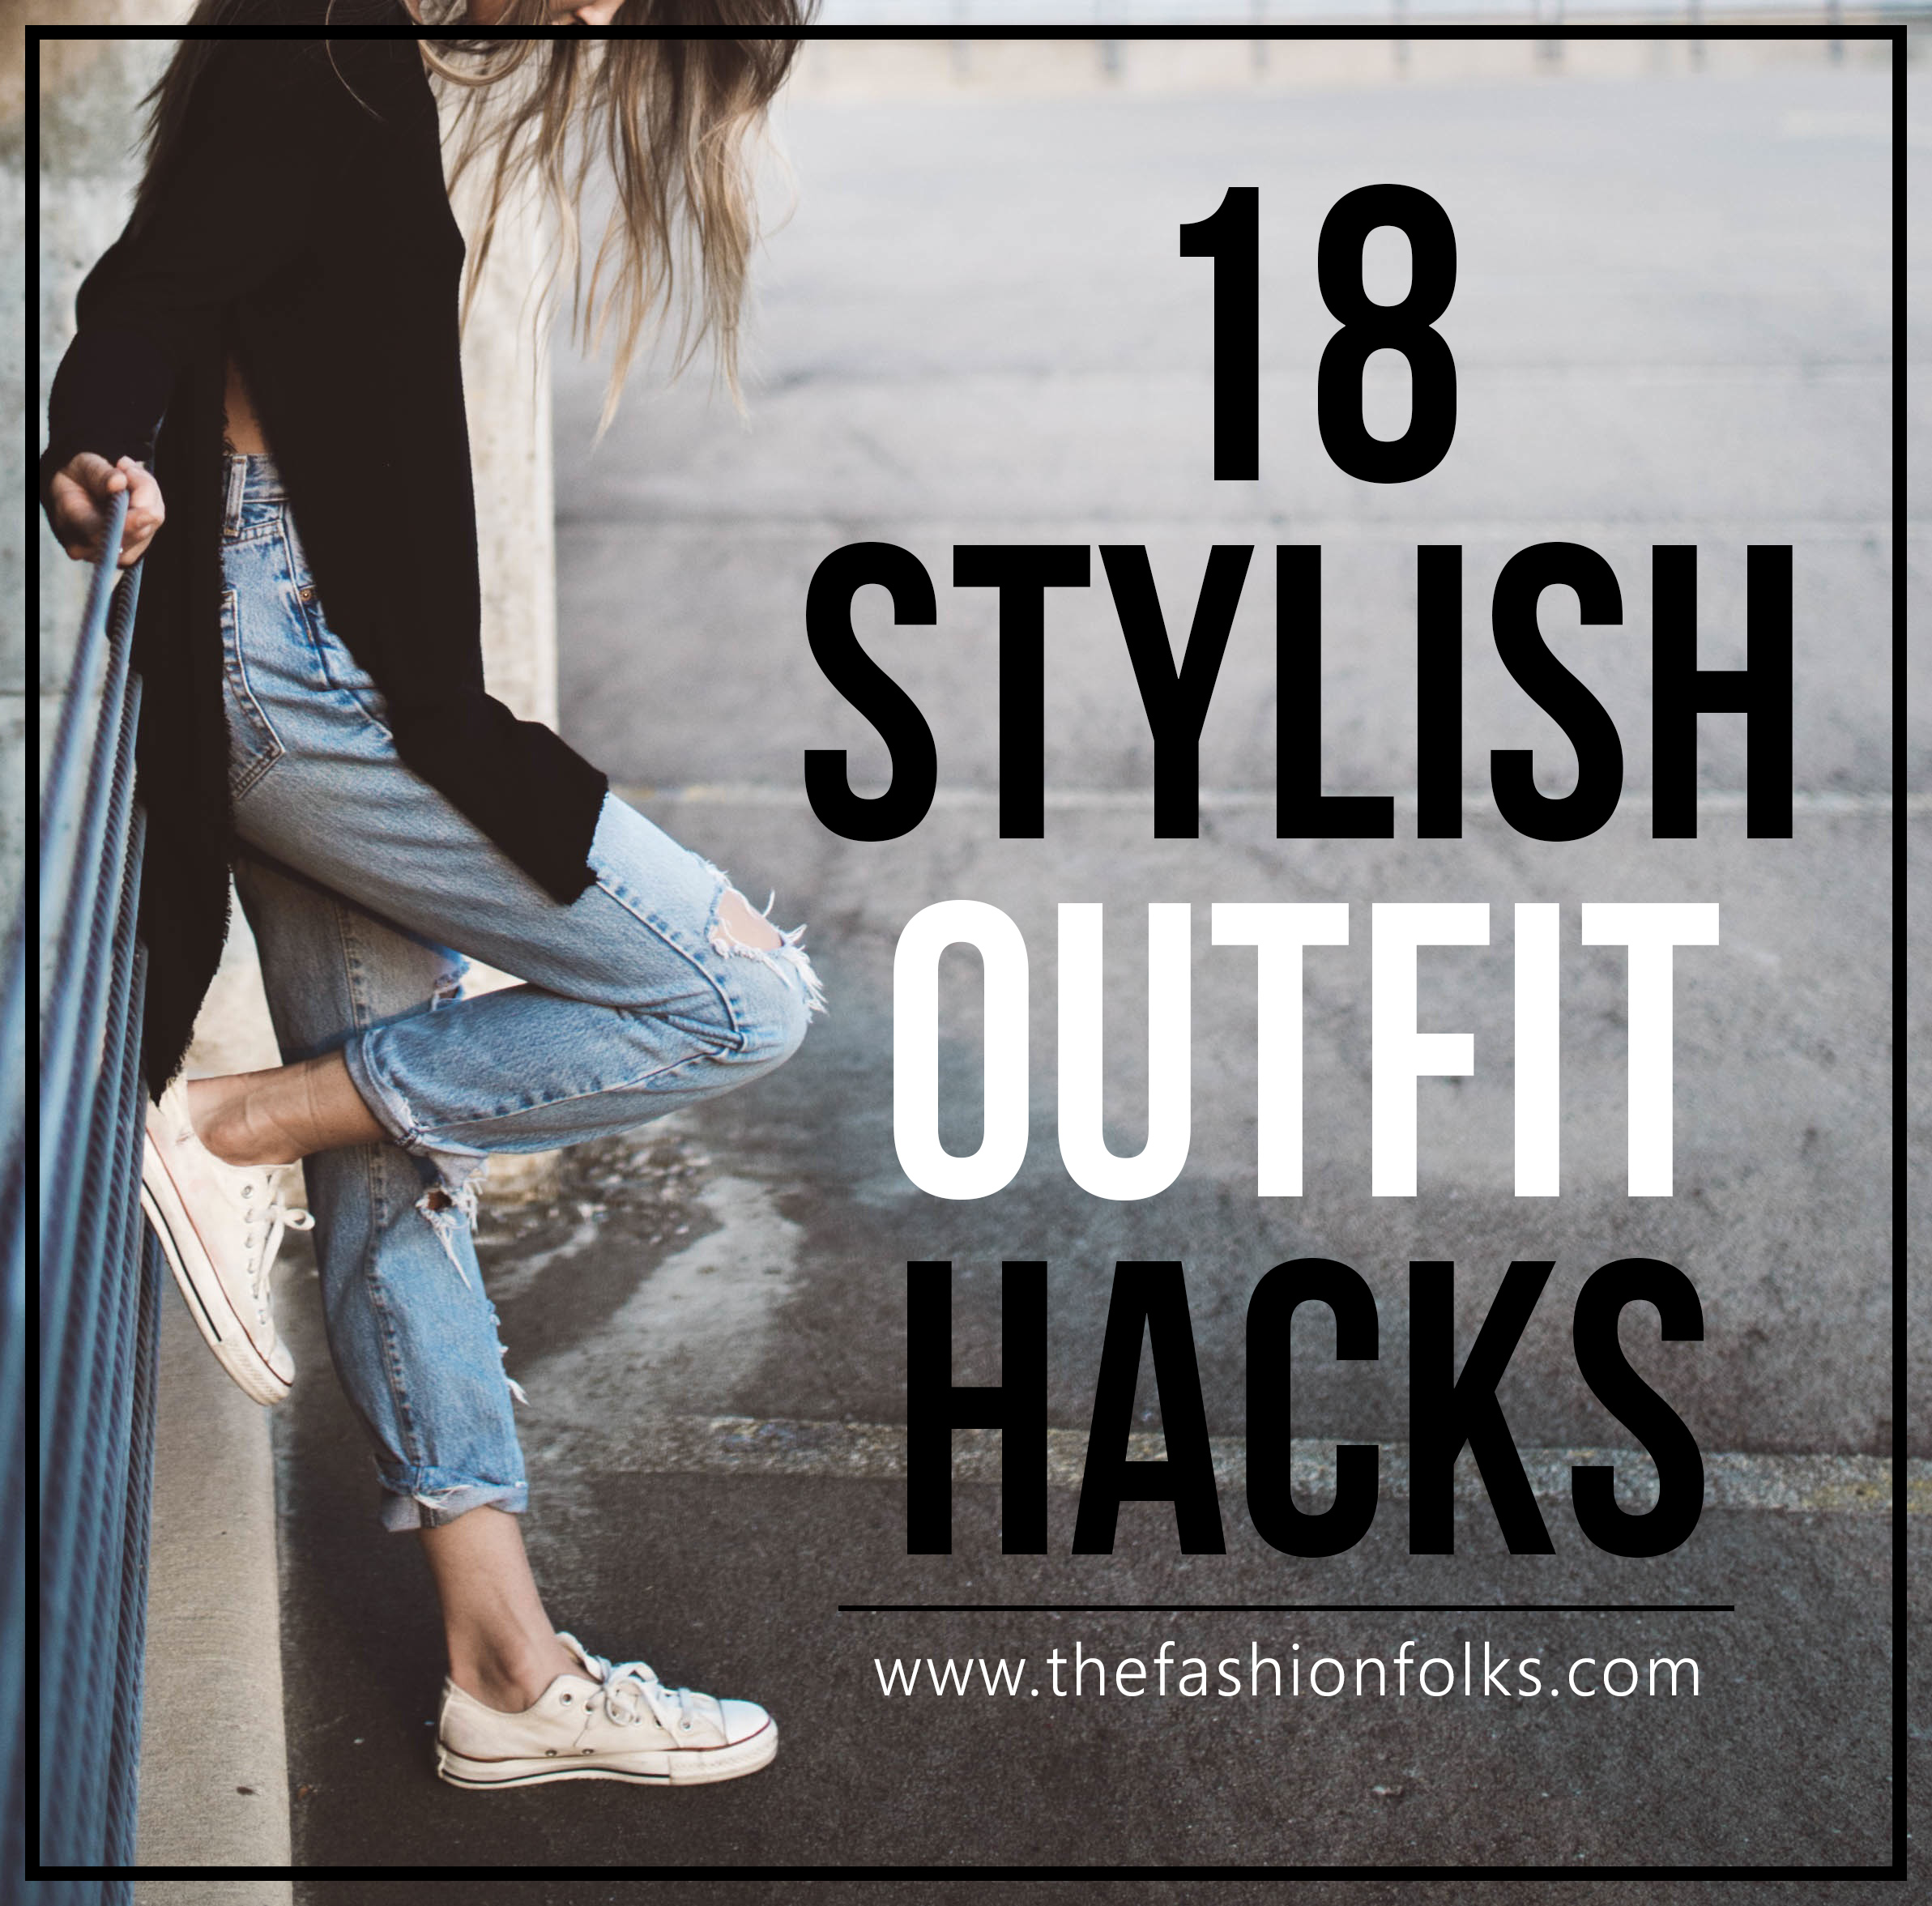 18 Stylish Outfit Hacks + Outfit Inspiration and street style fashion   The Fashion Folks